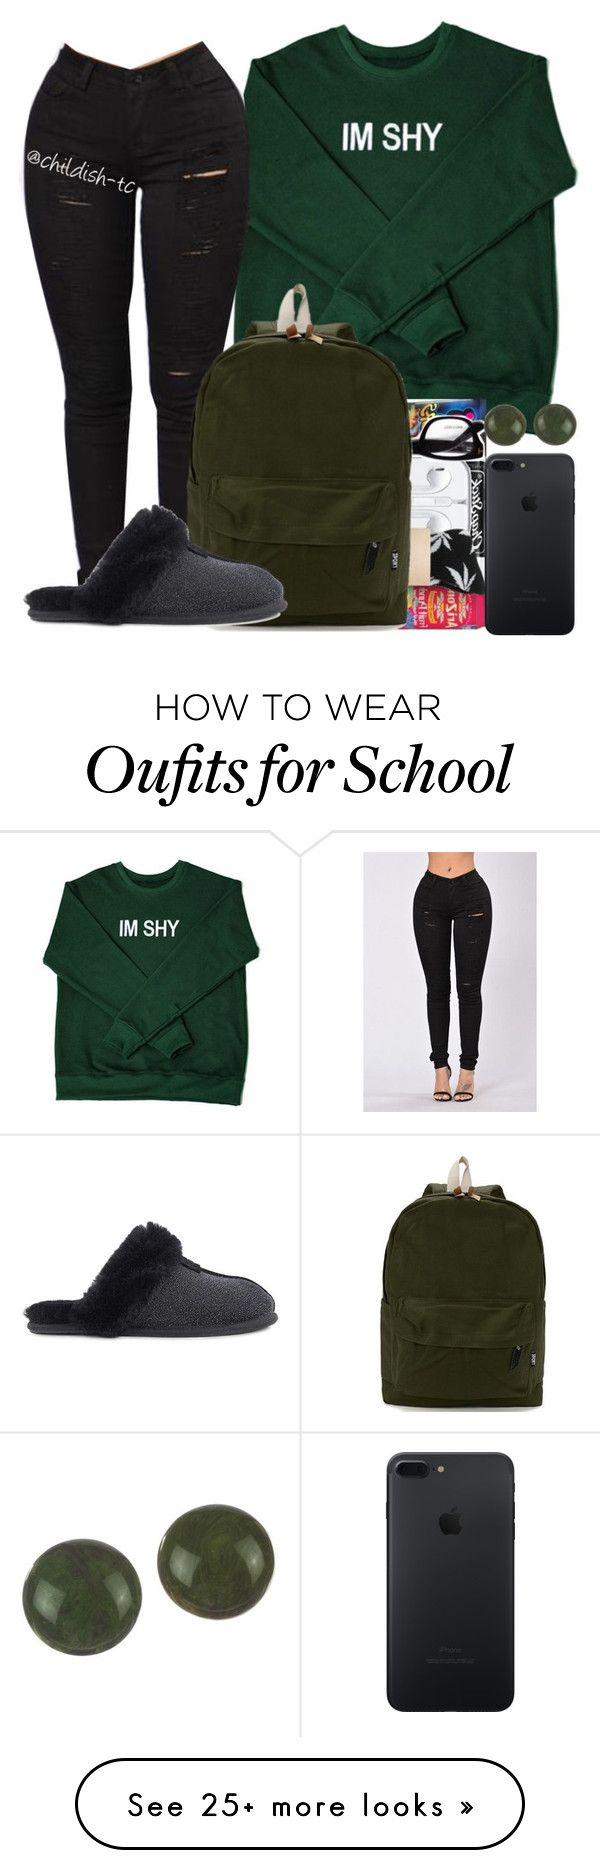 """School"" by childish-tc on Polyvore featuring UGG"